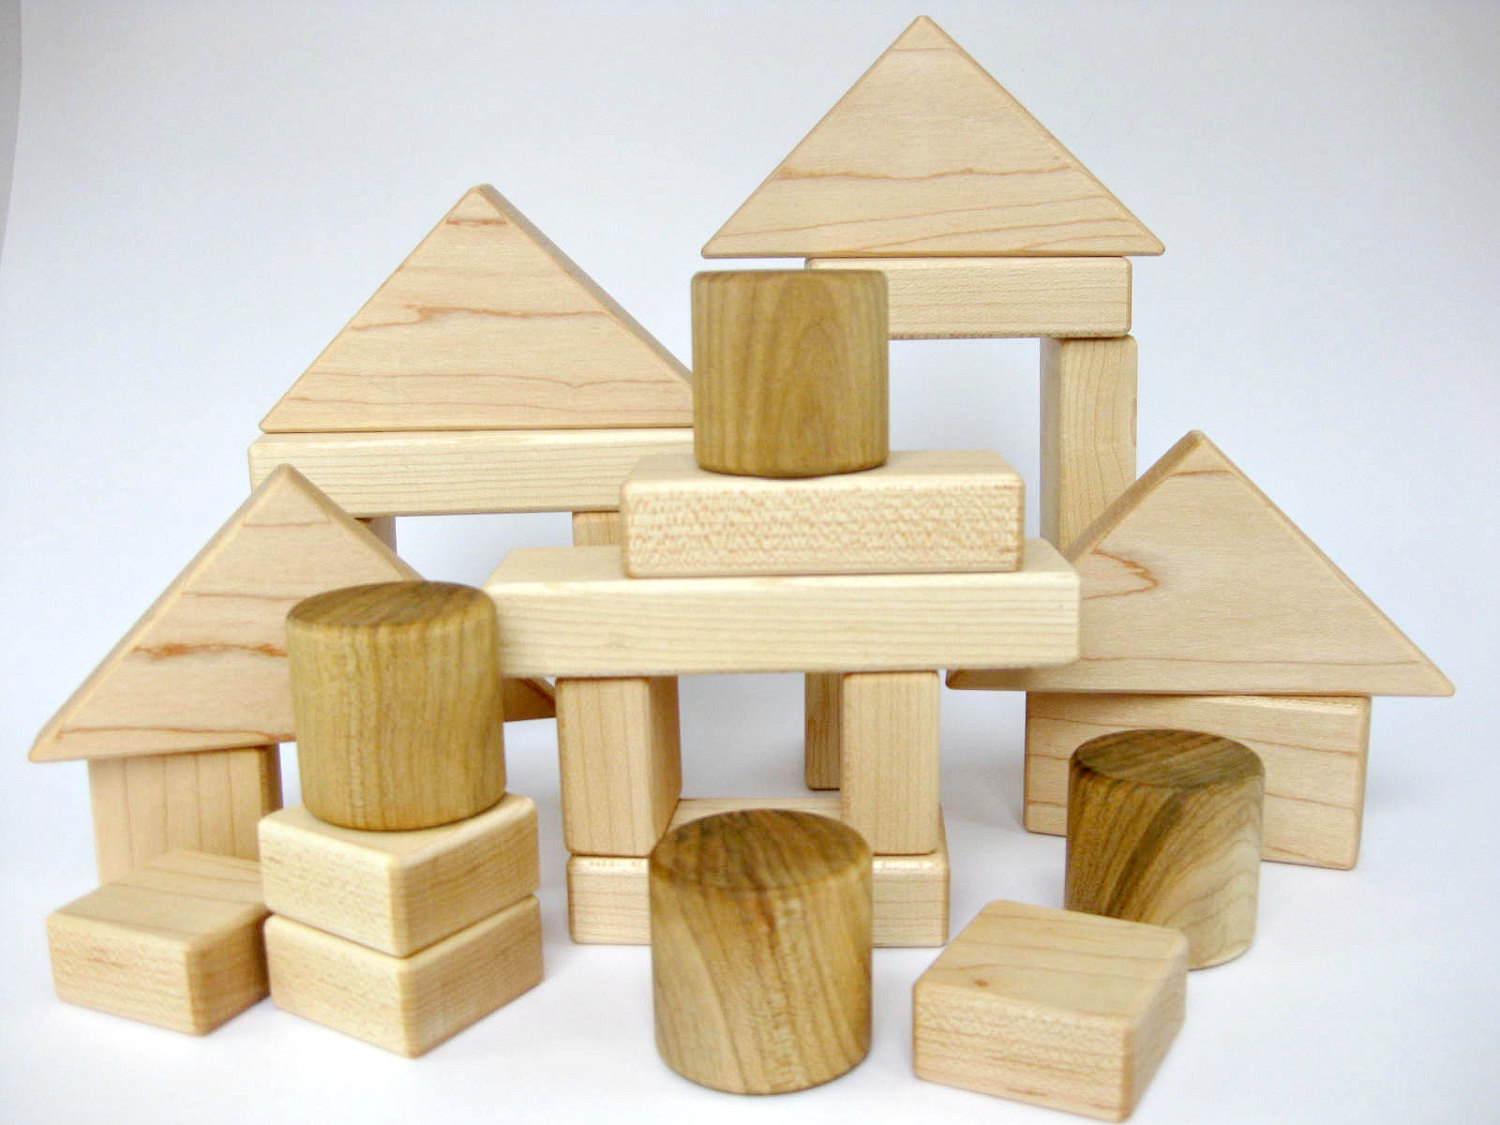 Wooden blocks clipart 5 » Clipart Station.